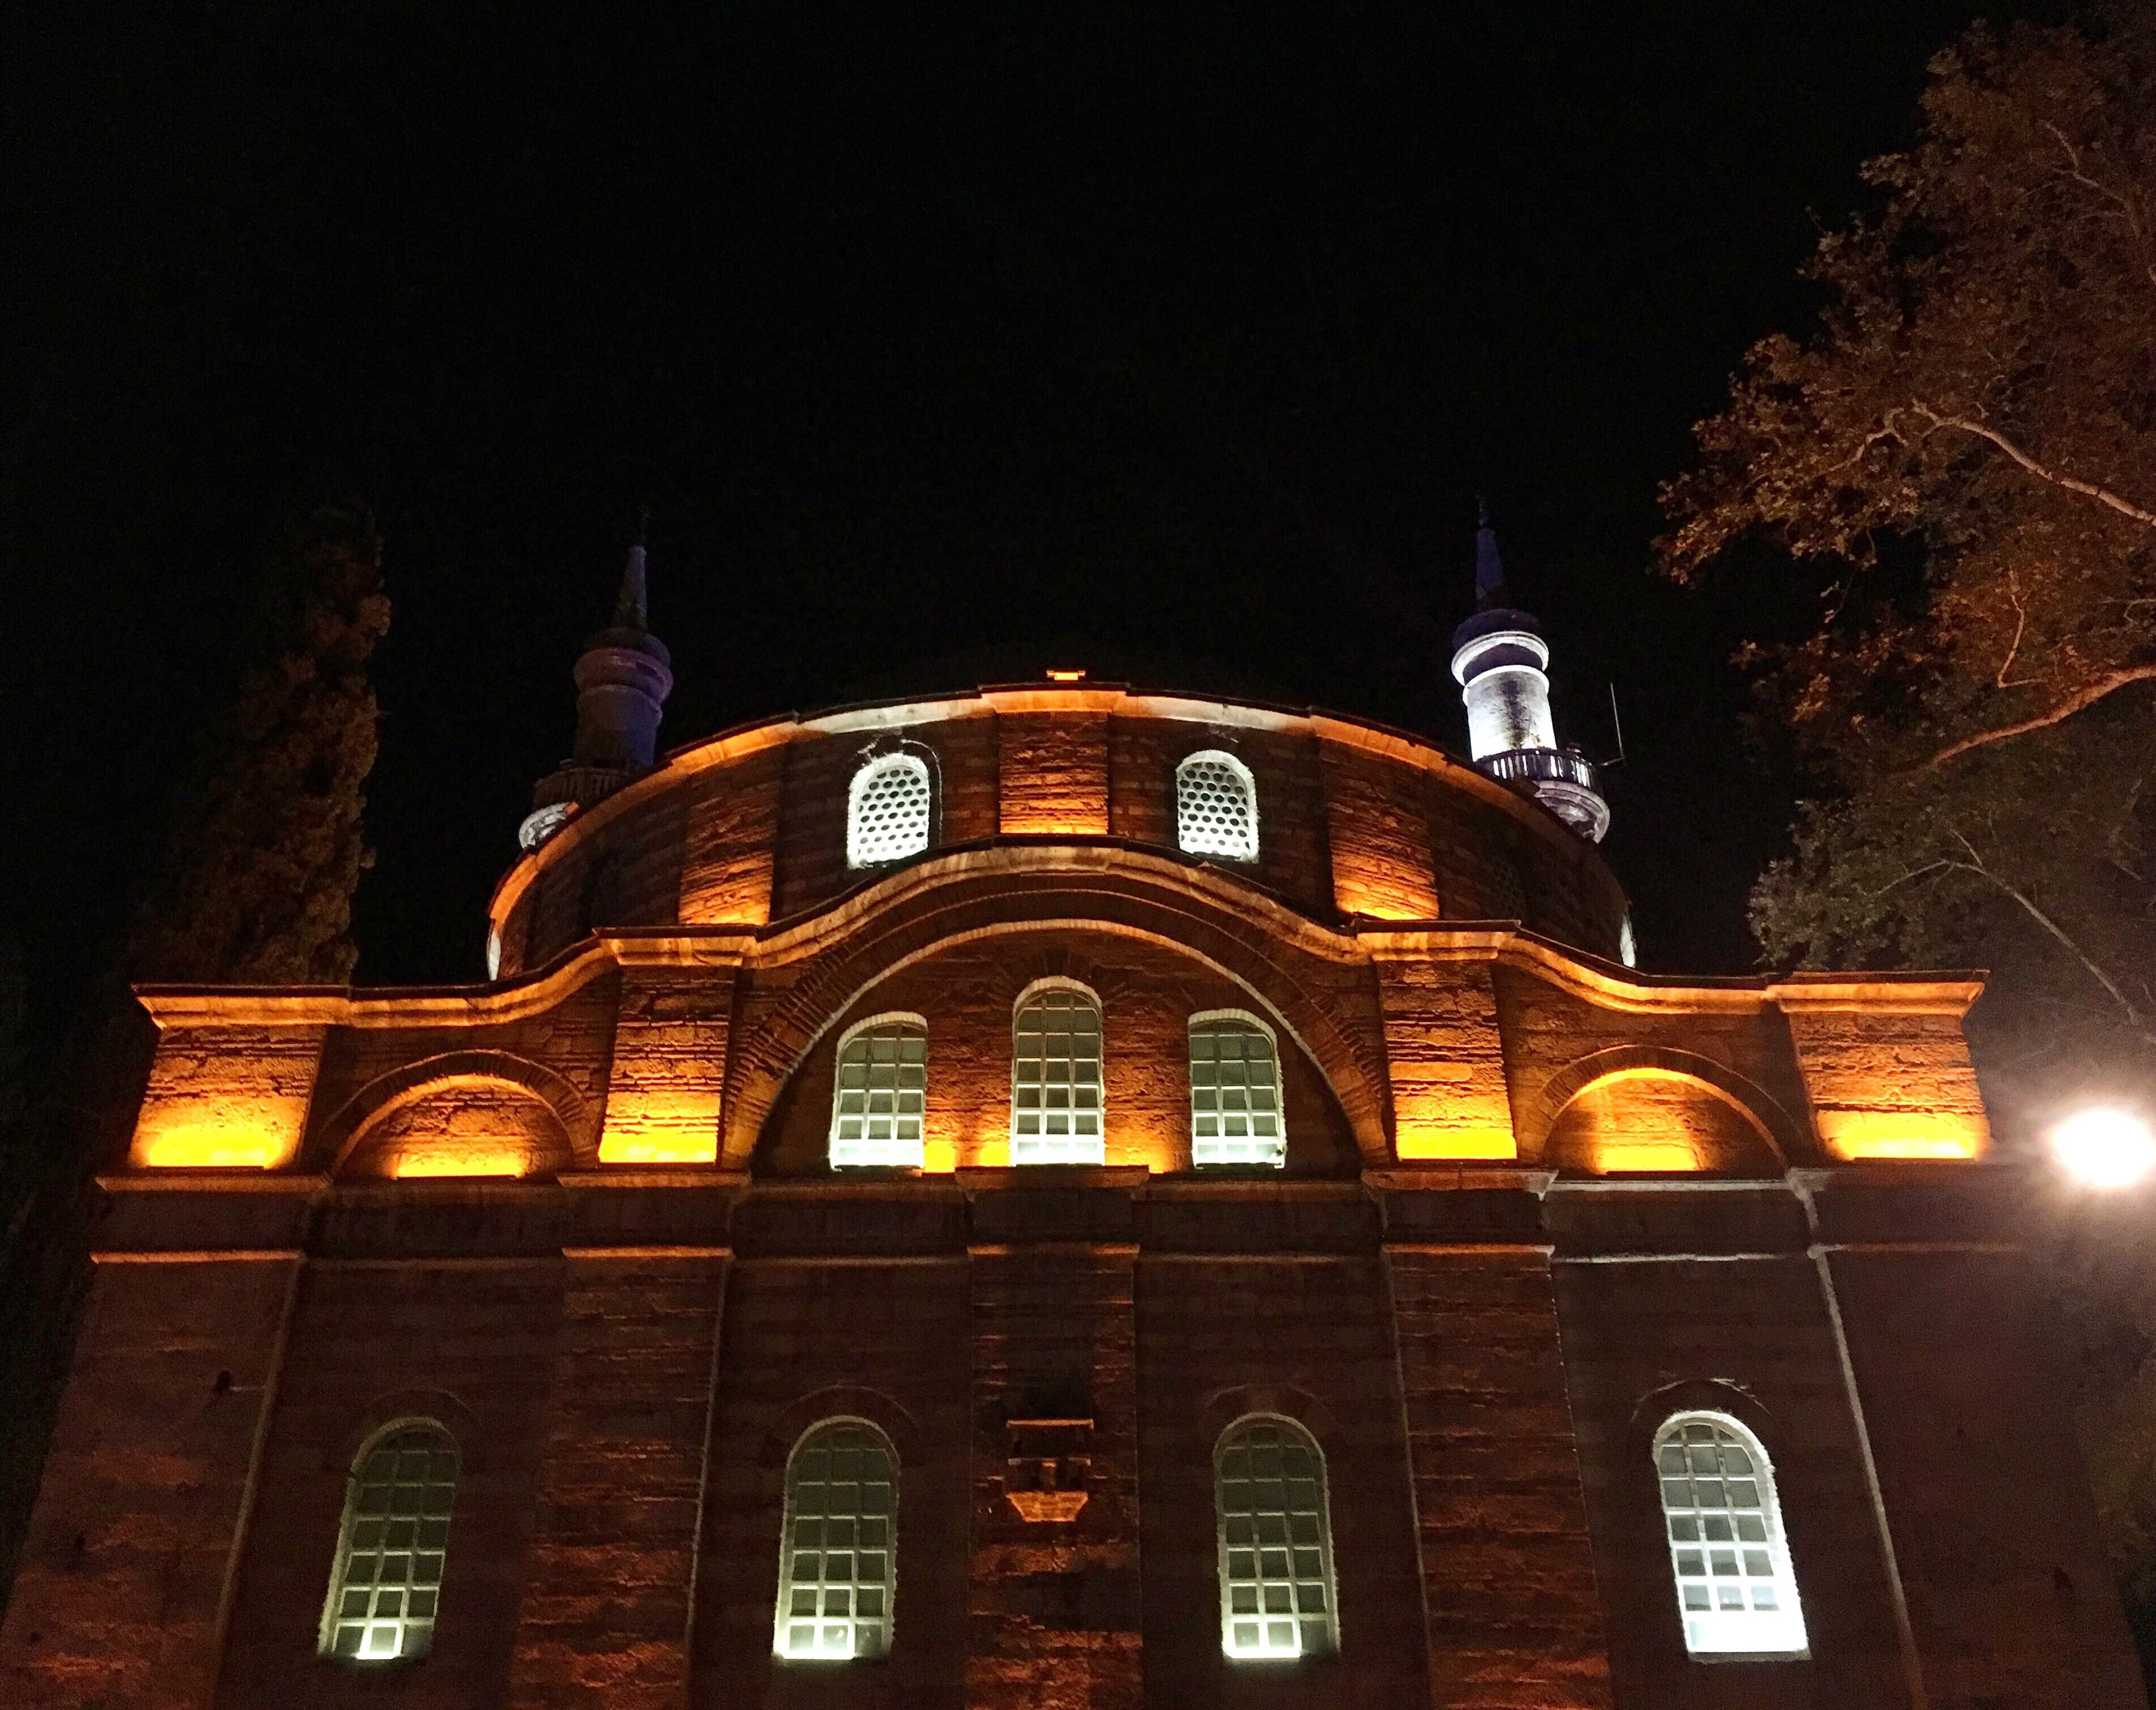 Architecture Built Structure Building Exterior Low Angle View Arch Window Night Illuminated City Clear Sky History Façade Historic Arched Sky Outdoors Architectural Column Government Building Architectural Feature Government Bursamosque Bursadazaman Yesilbursa Sevdiğimyerler